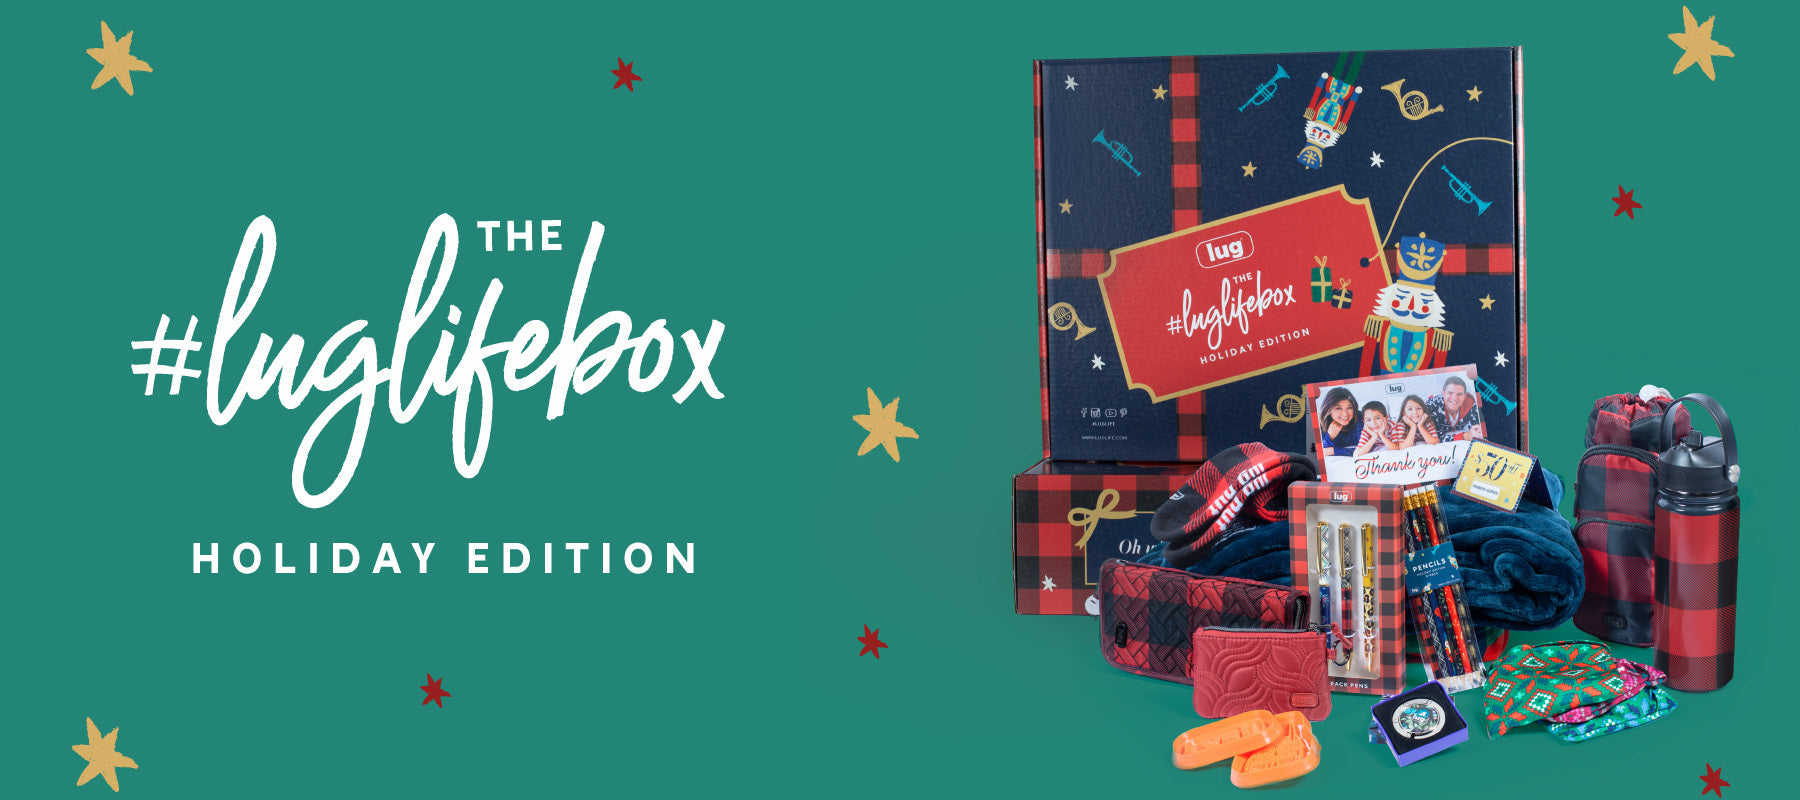 LuglifeBox Holiday Edition